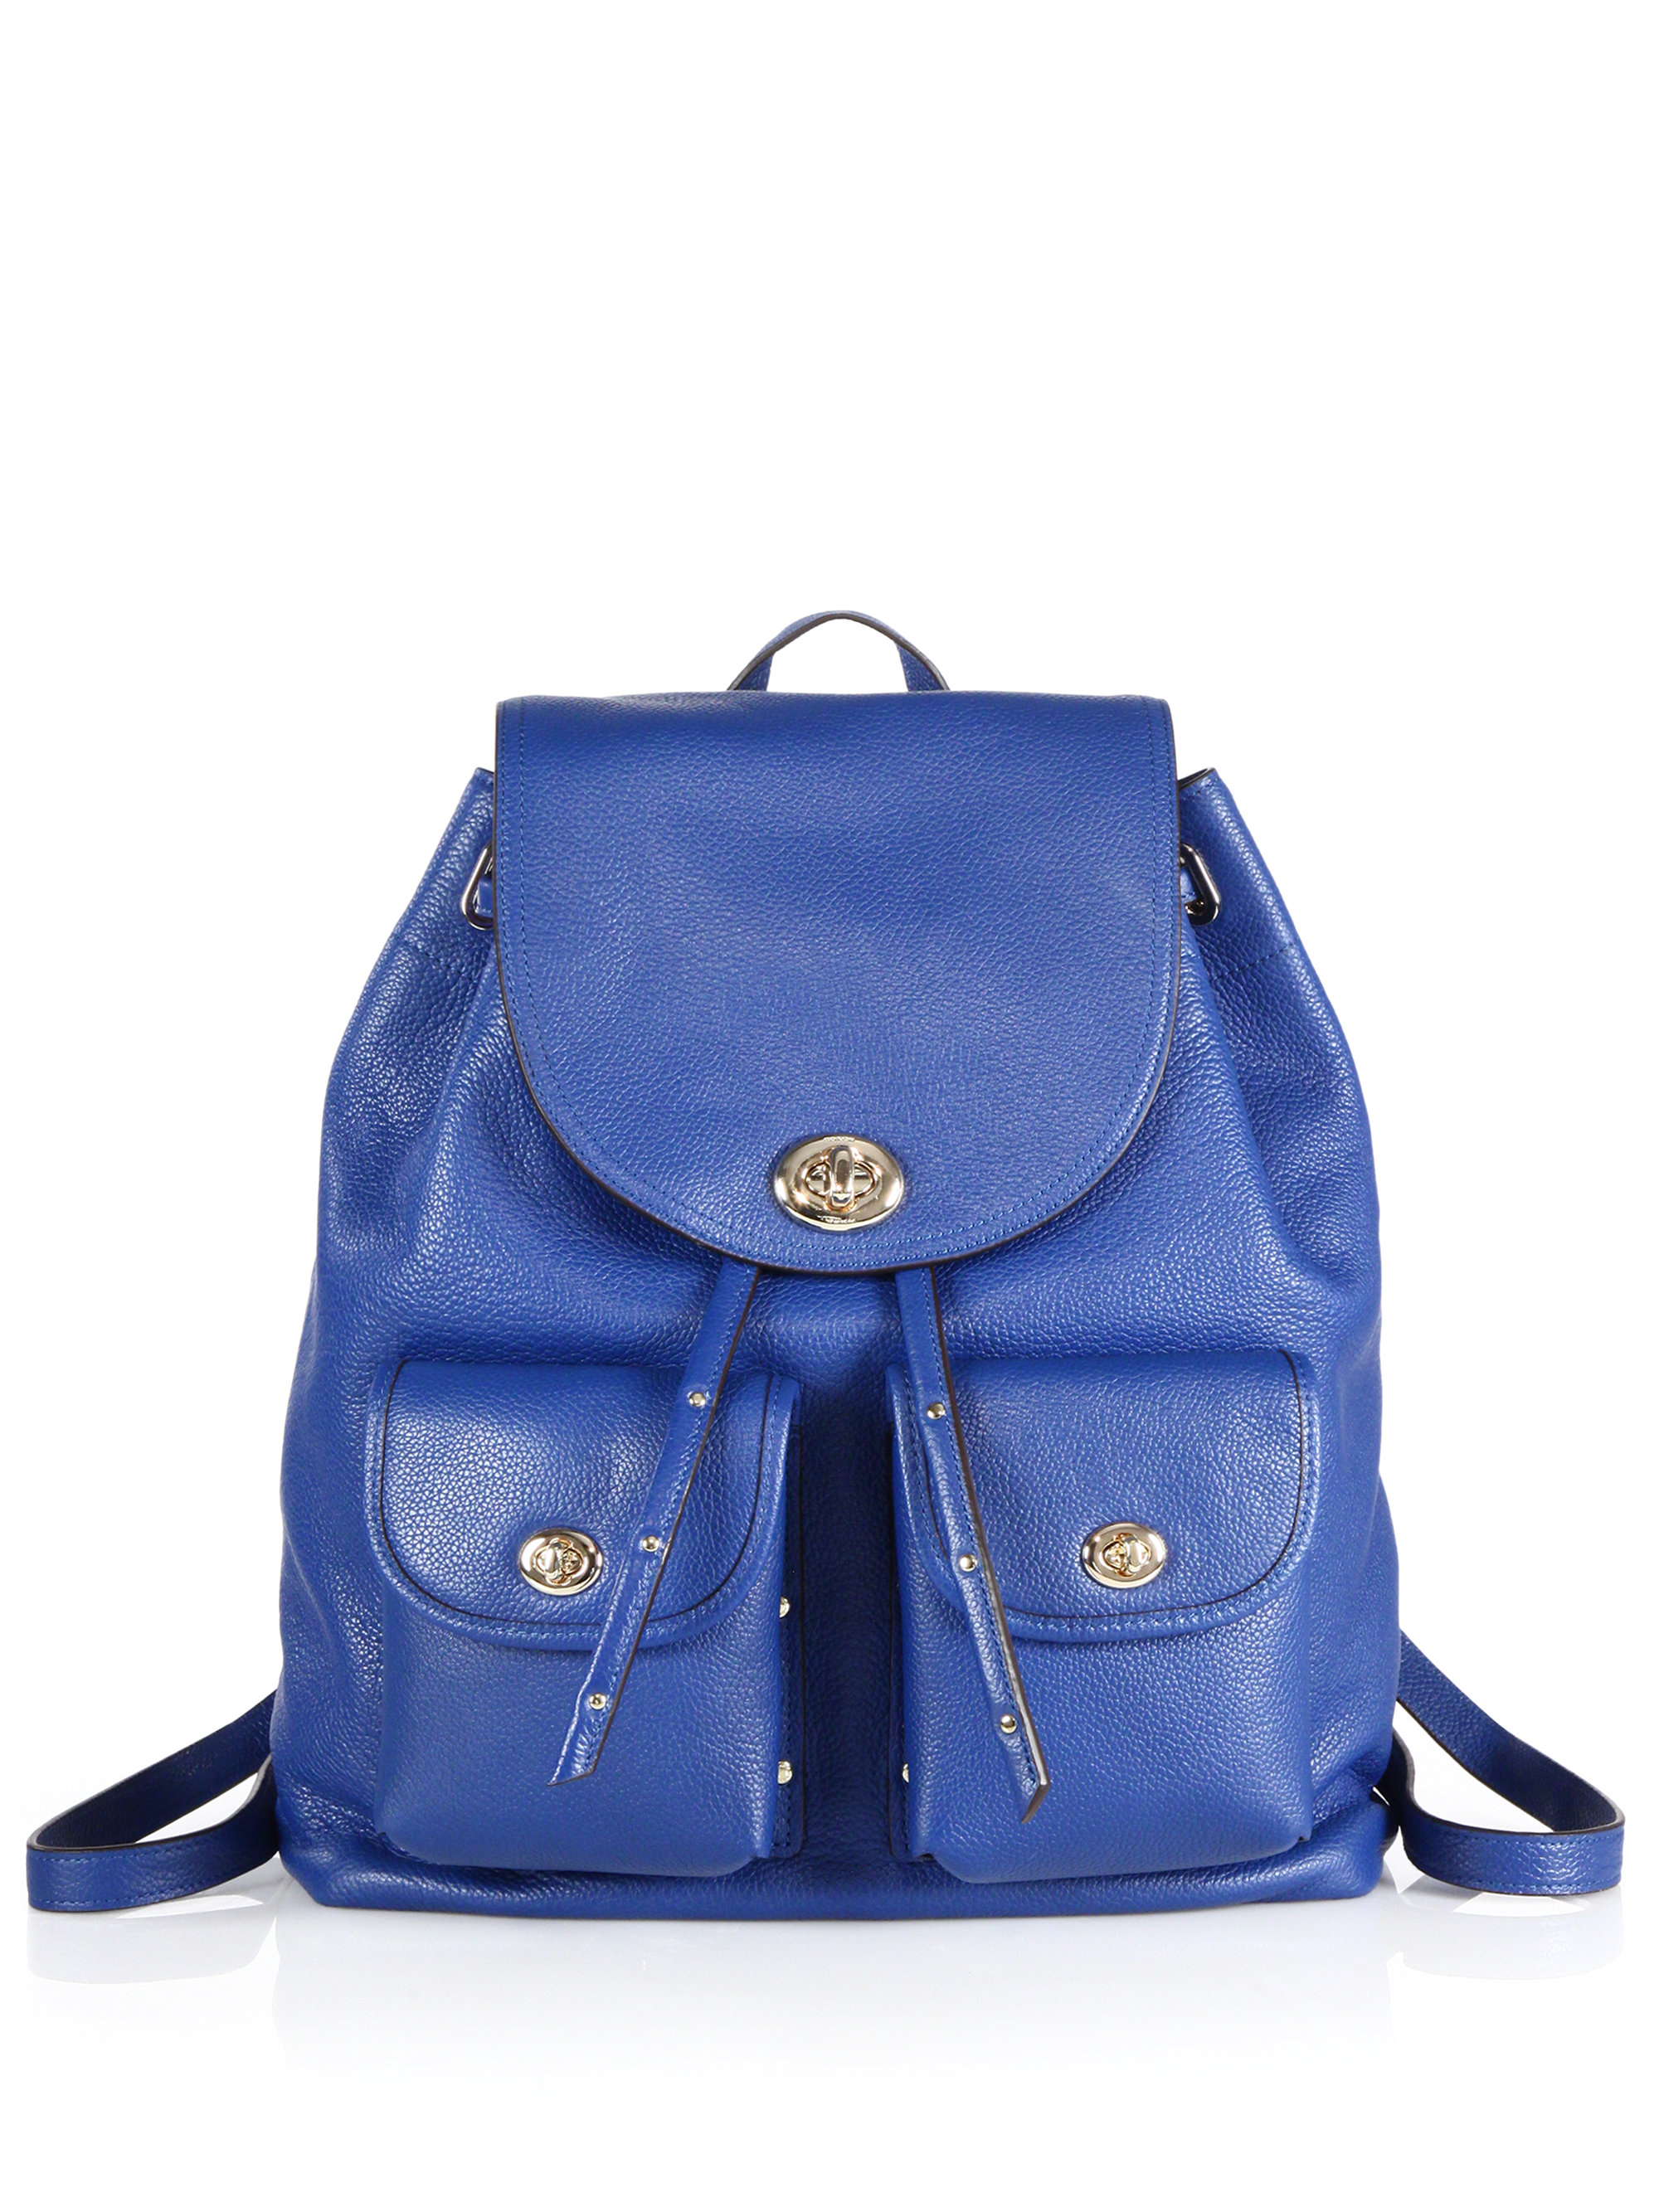 Coach Turnlock Tie Leather Backpack in Blue | Lyst